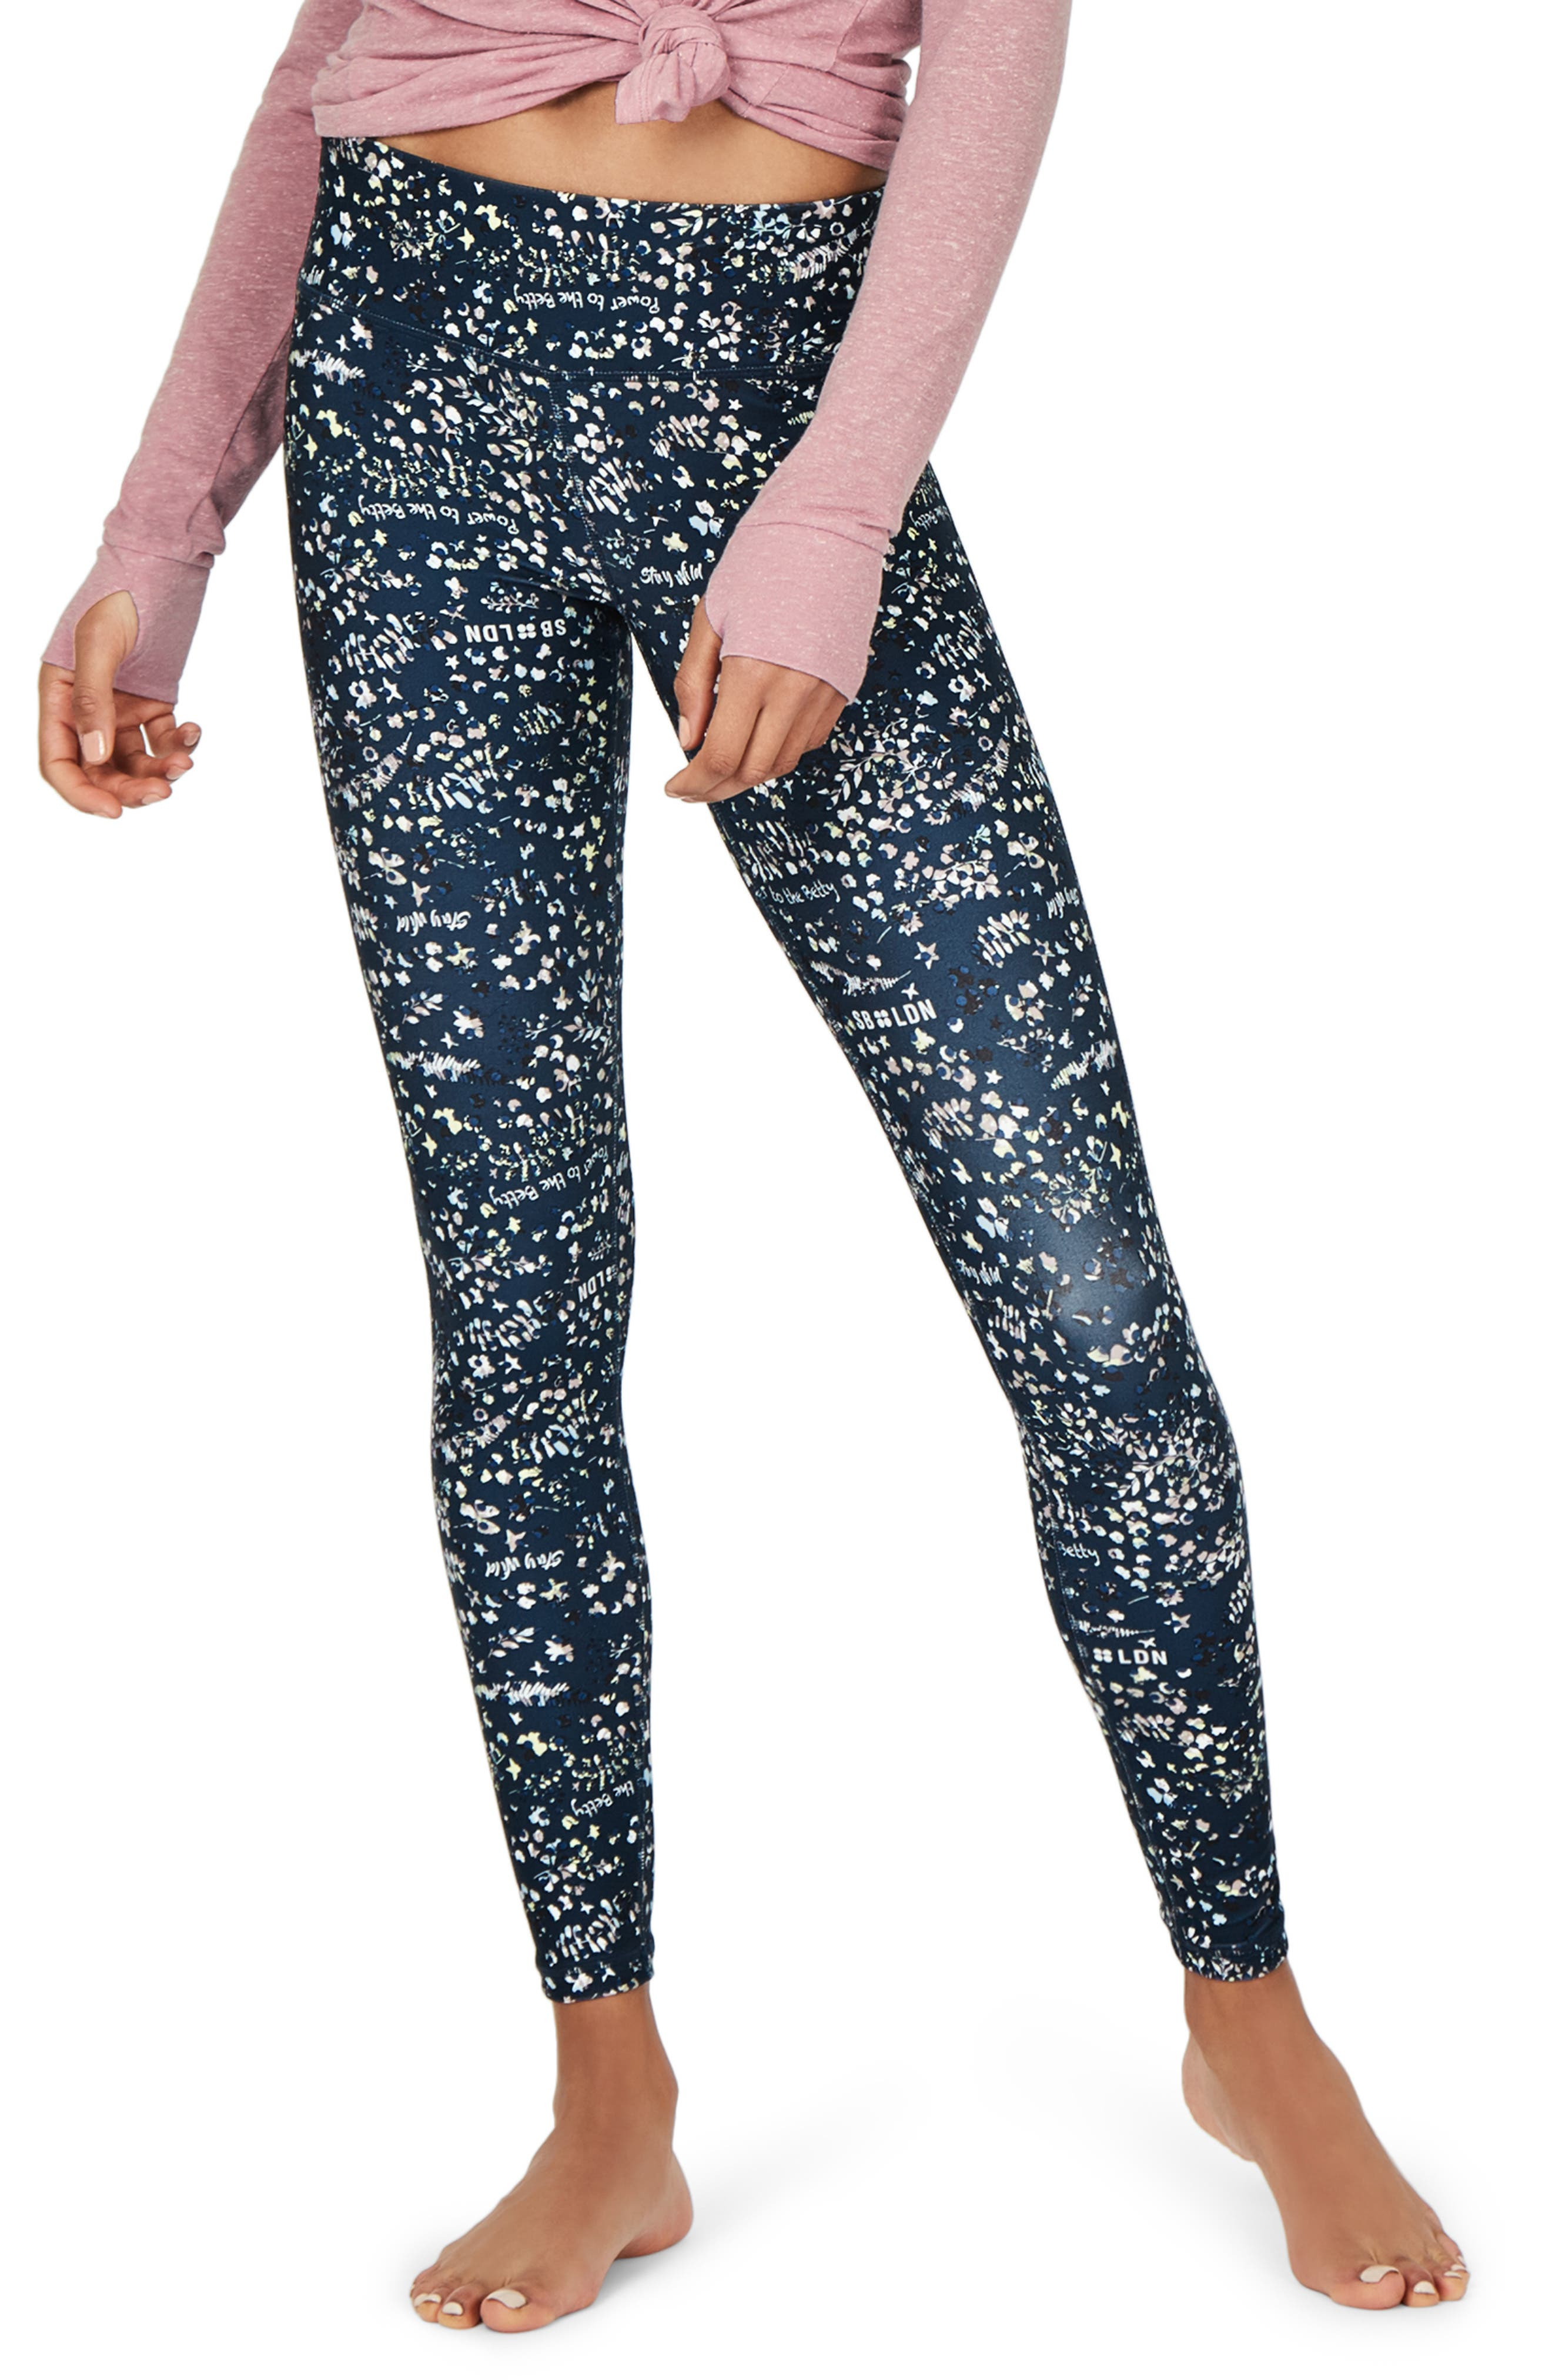 SWEATY BETTY, Contour Leggings, Main thumbnail 1, color, BEETLE BLUE STAY WILD PRINT